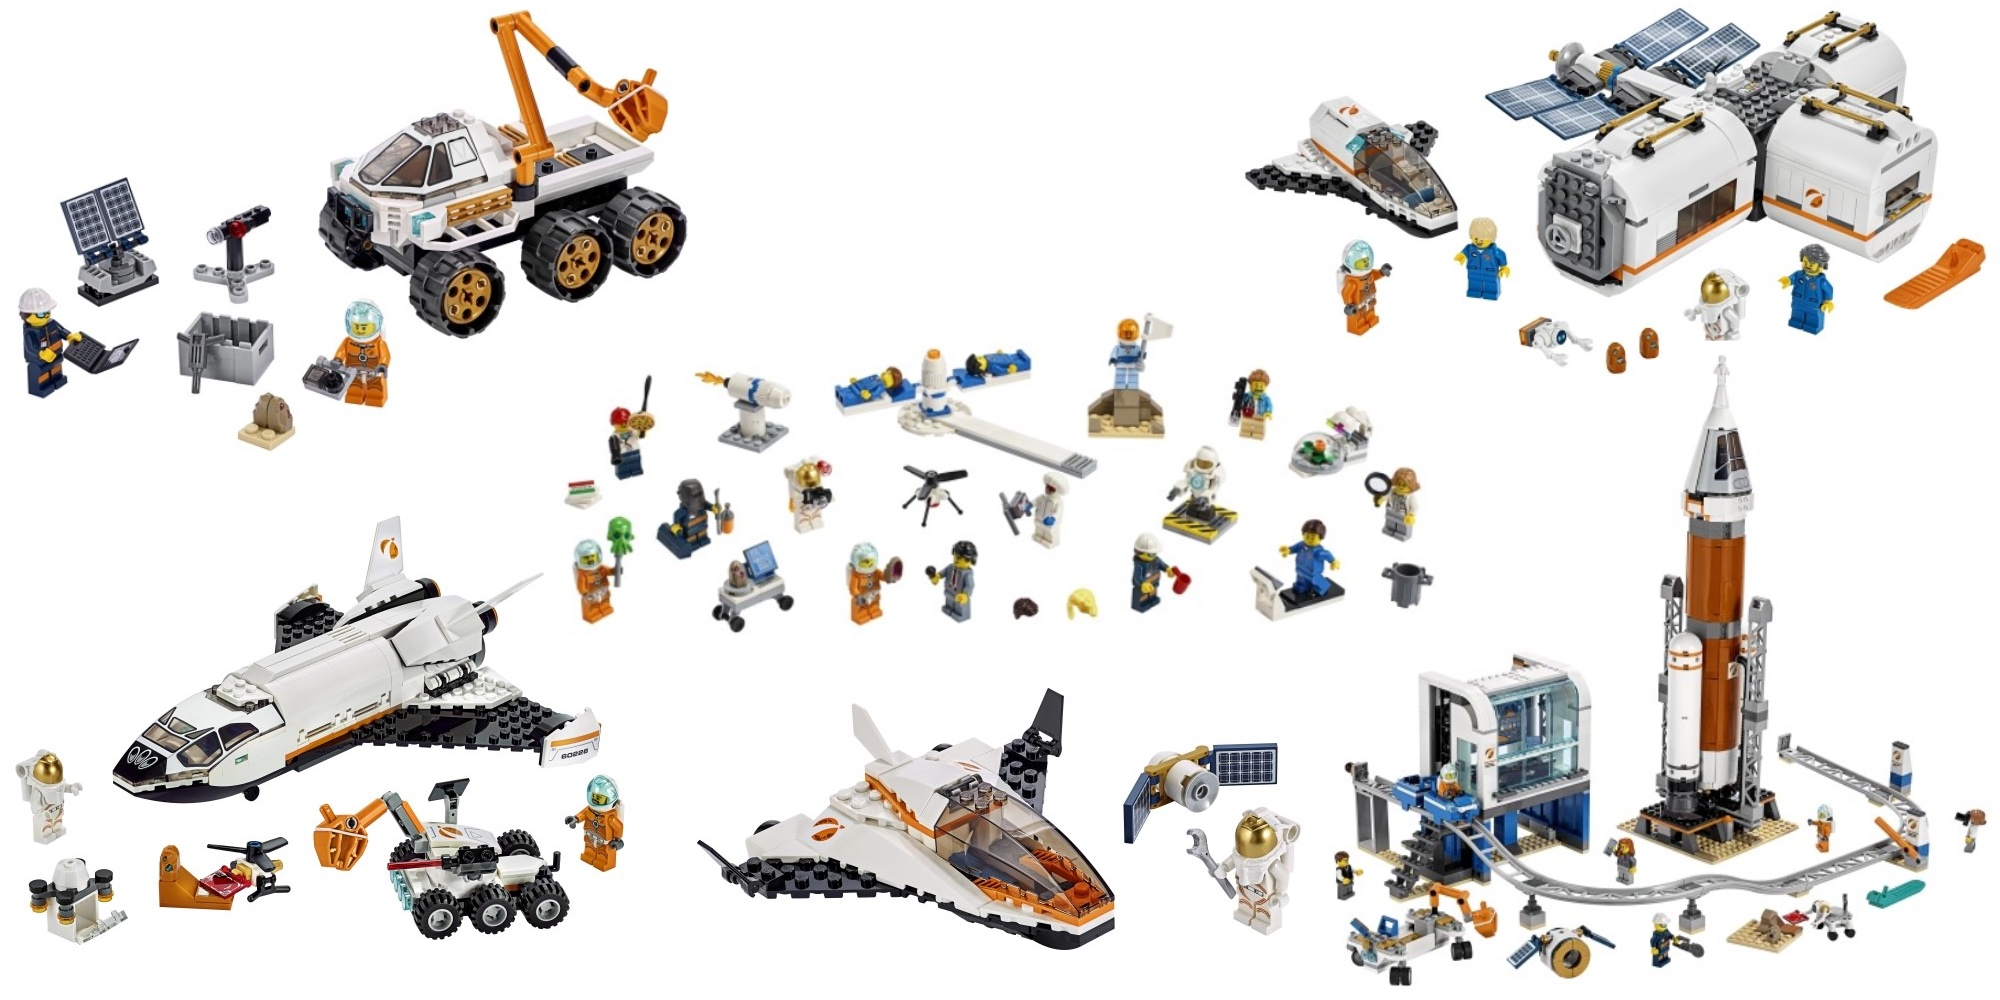 LEGO City Space Sets